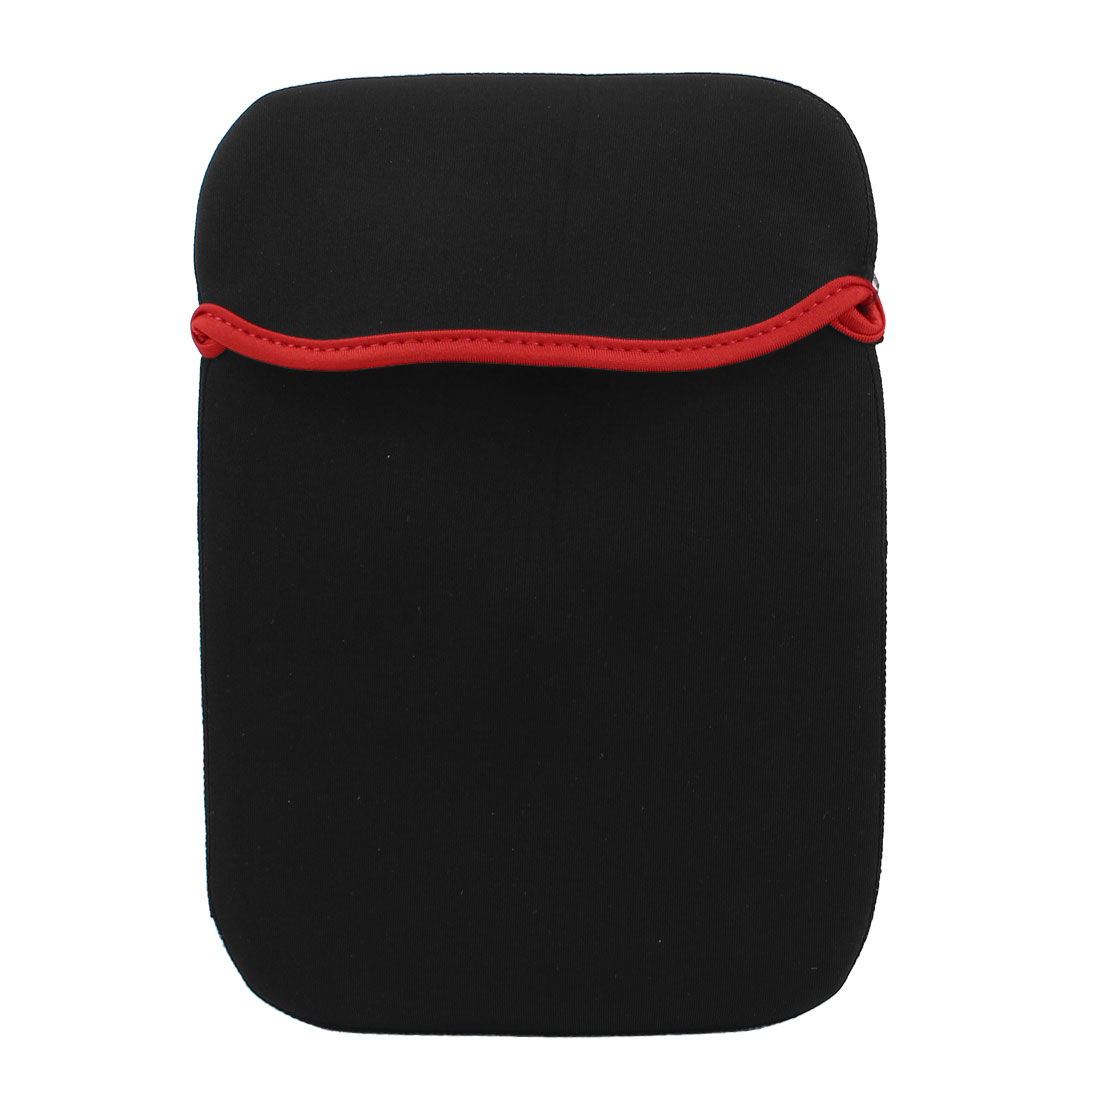 "Black Red Carrying Sleeve Neoprene Cover Bag Case for 8.9"" Laptop"